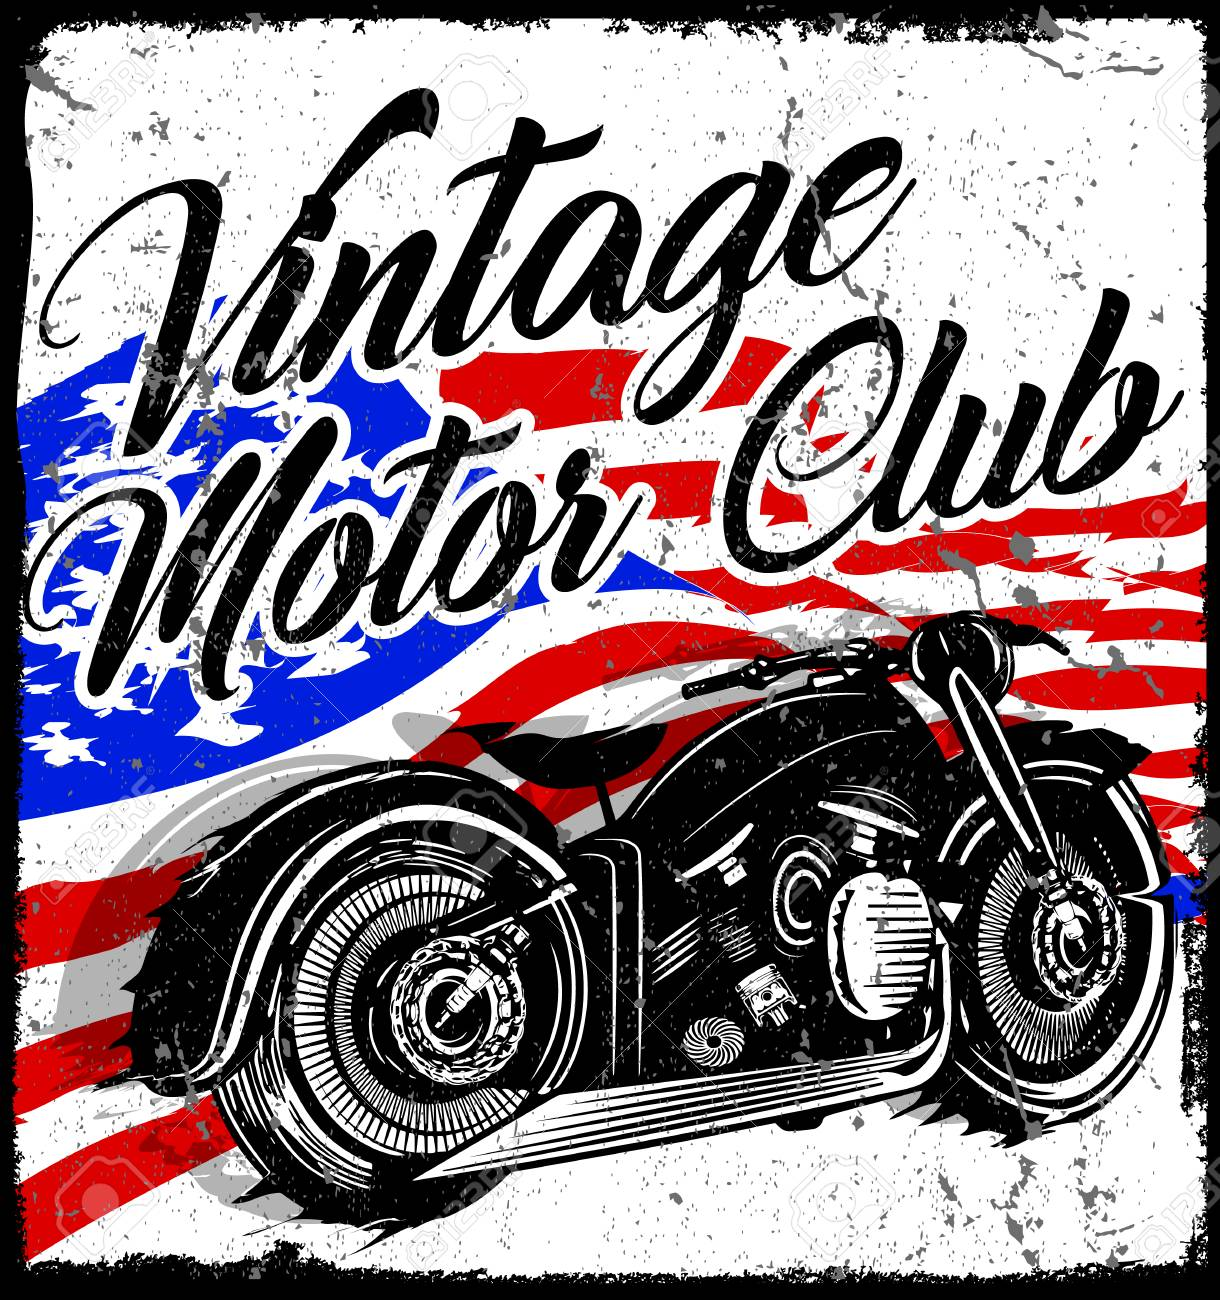 ac6a56204 Vintage Motorcycle T-shirt Graphic Royalty Free Cliparts, Vectors ...